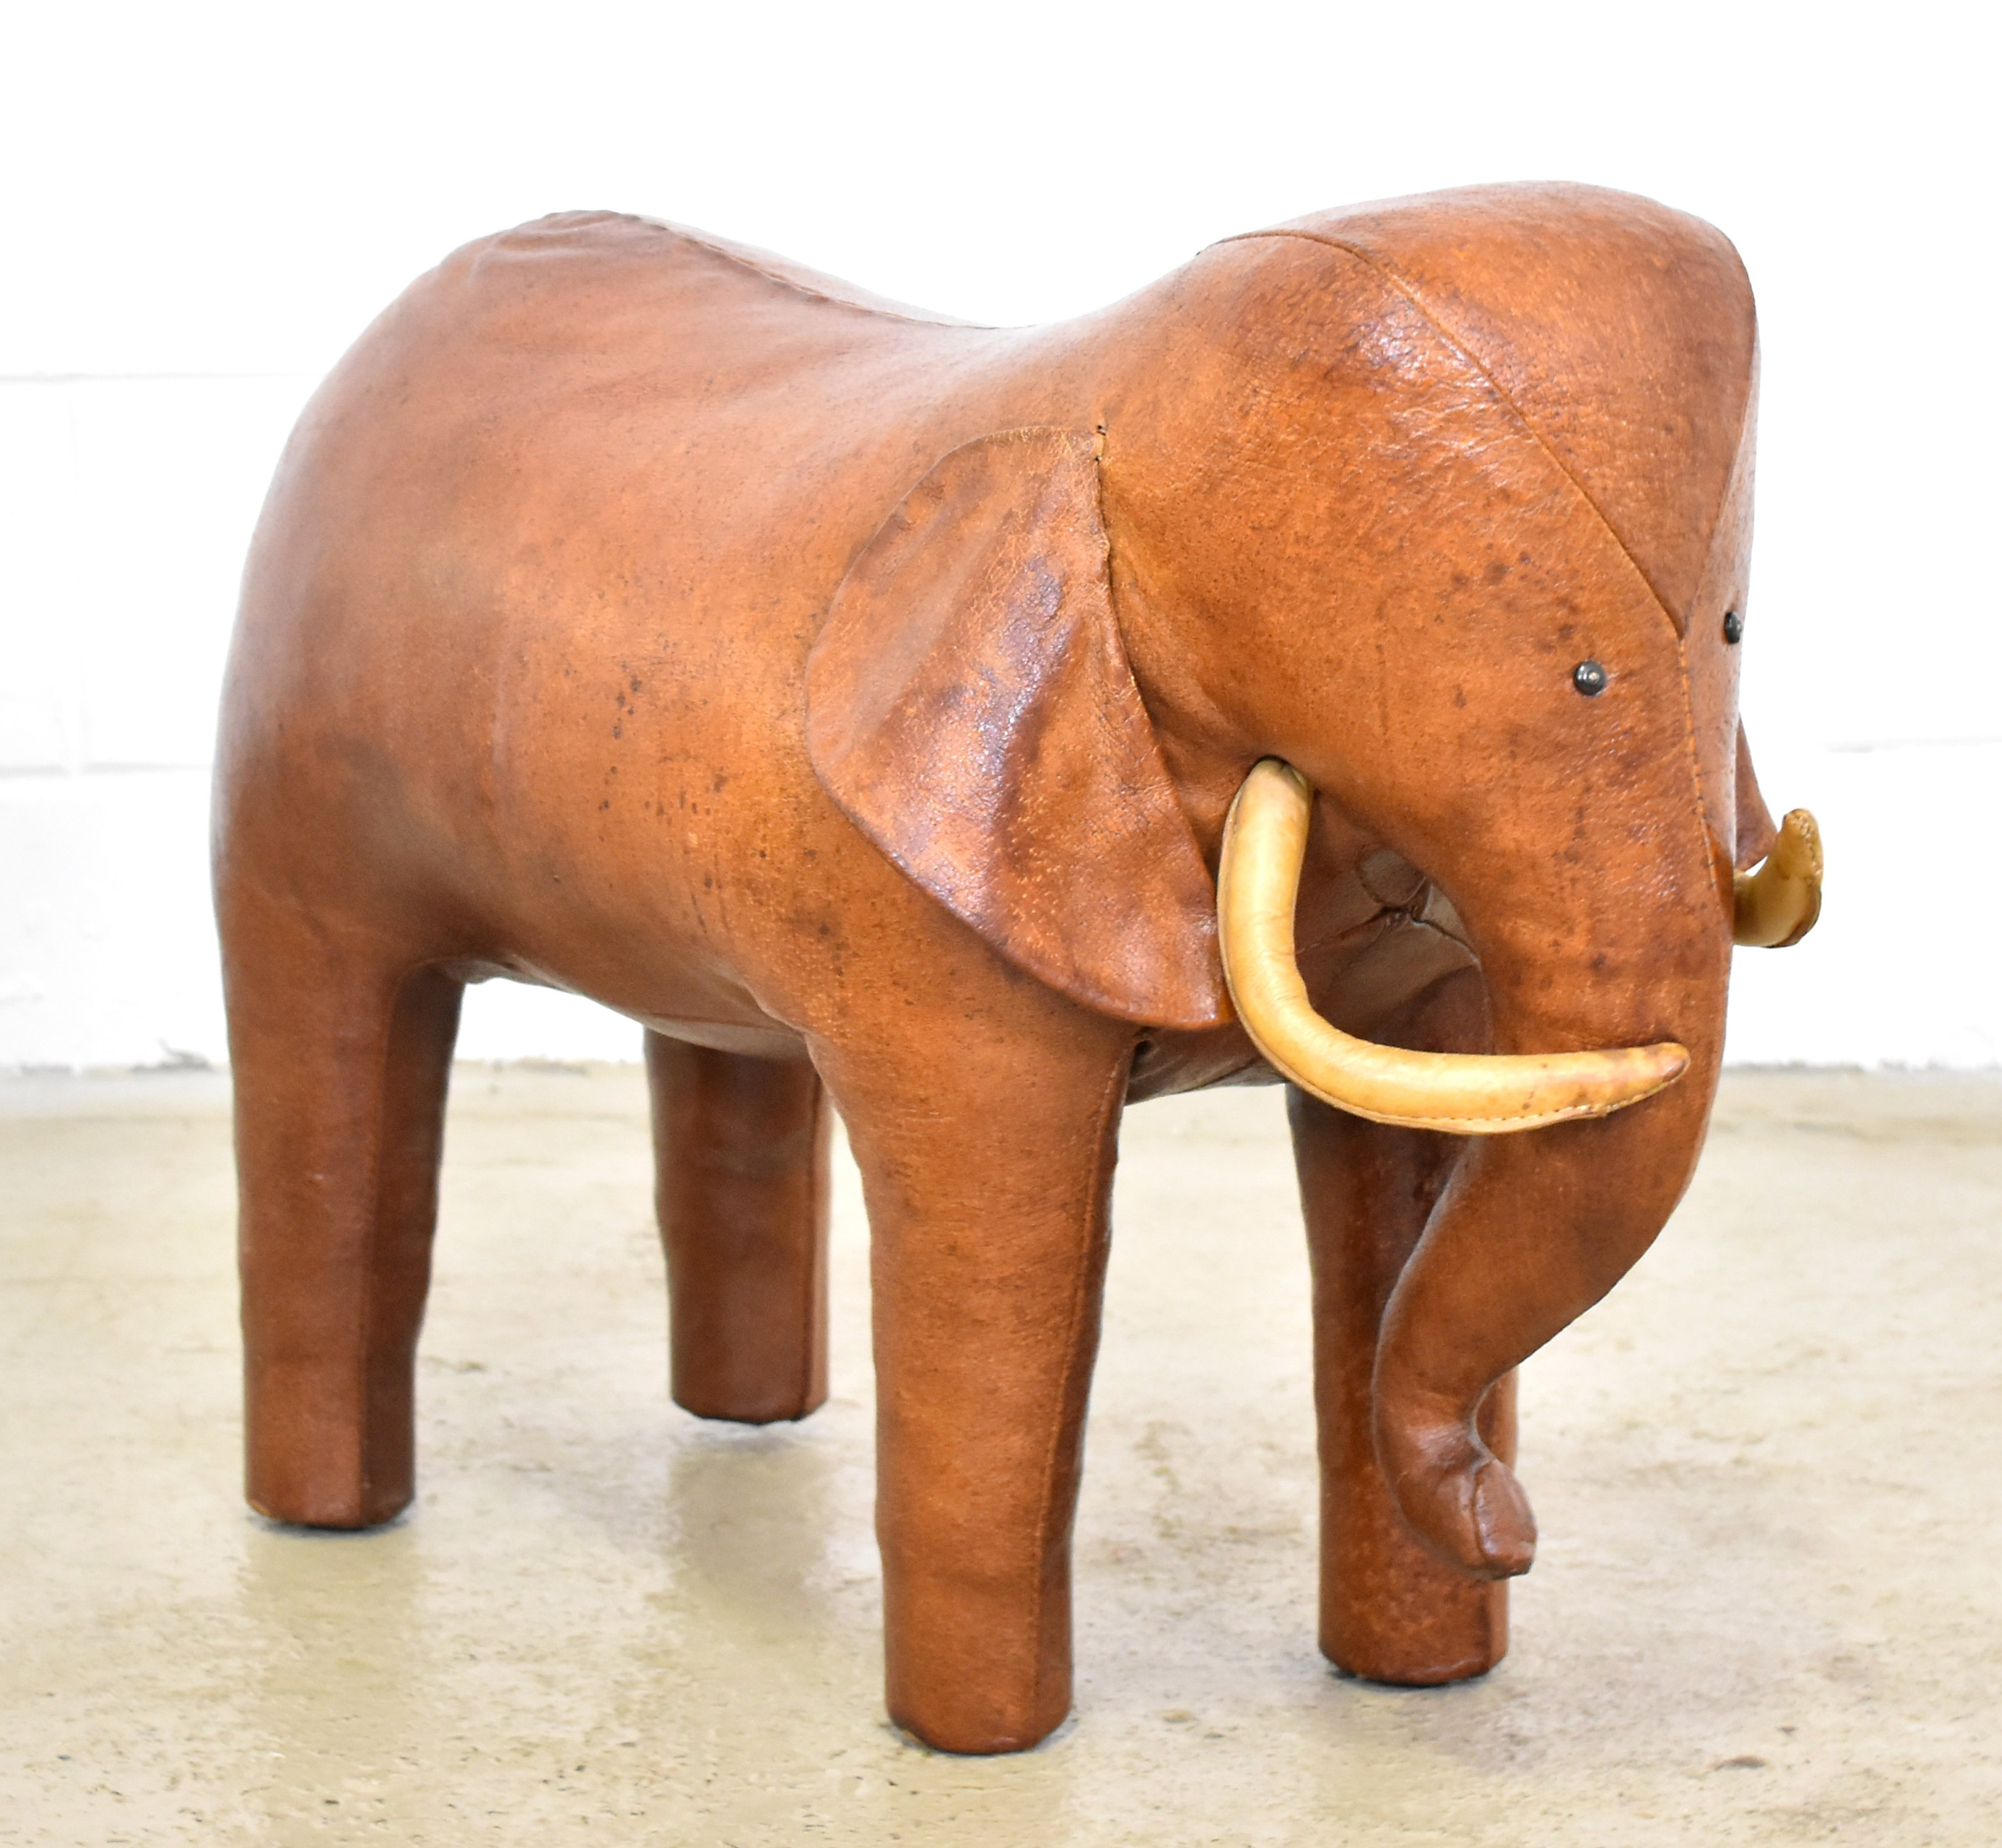 Elephant Footstool By Dimitri Omersa For Abercrombie